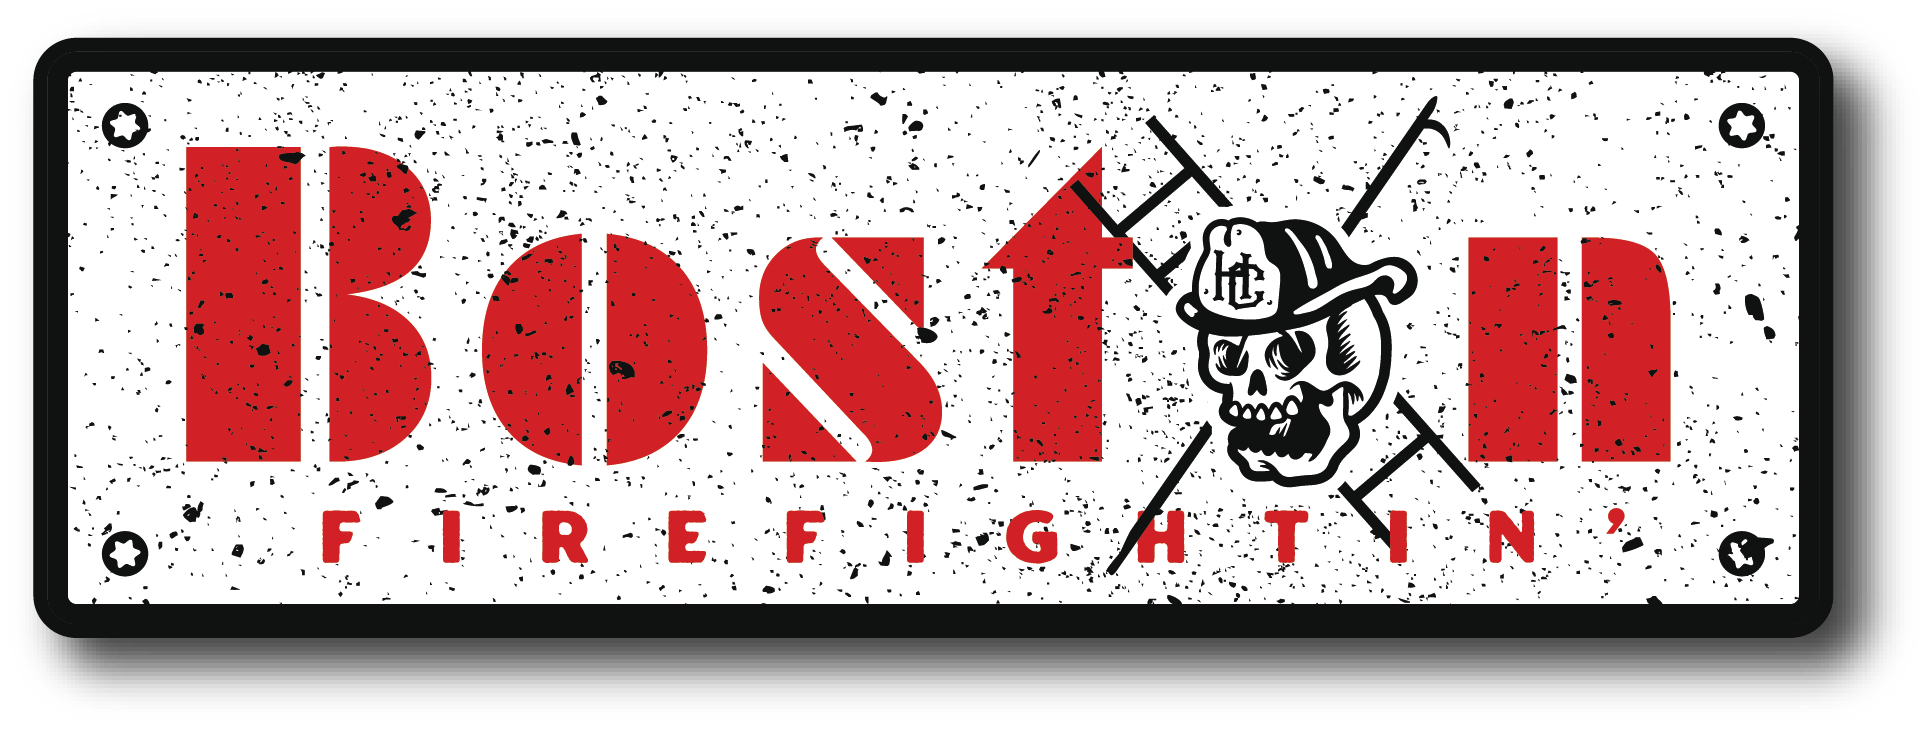 H.C. Boston Firefightin' Decal